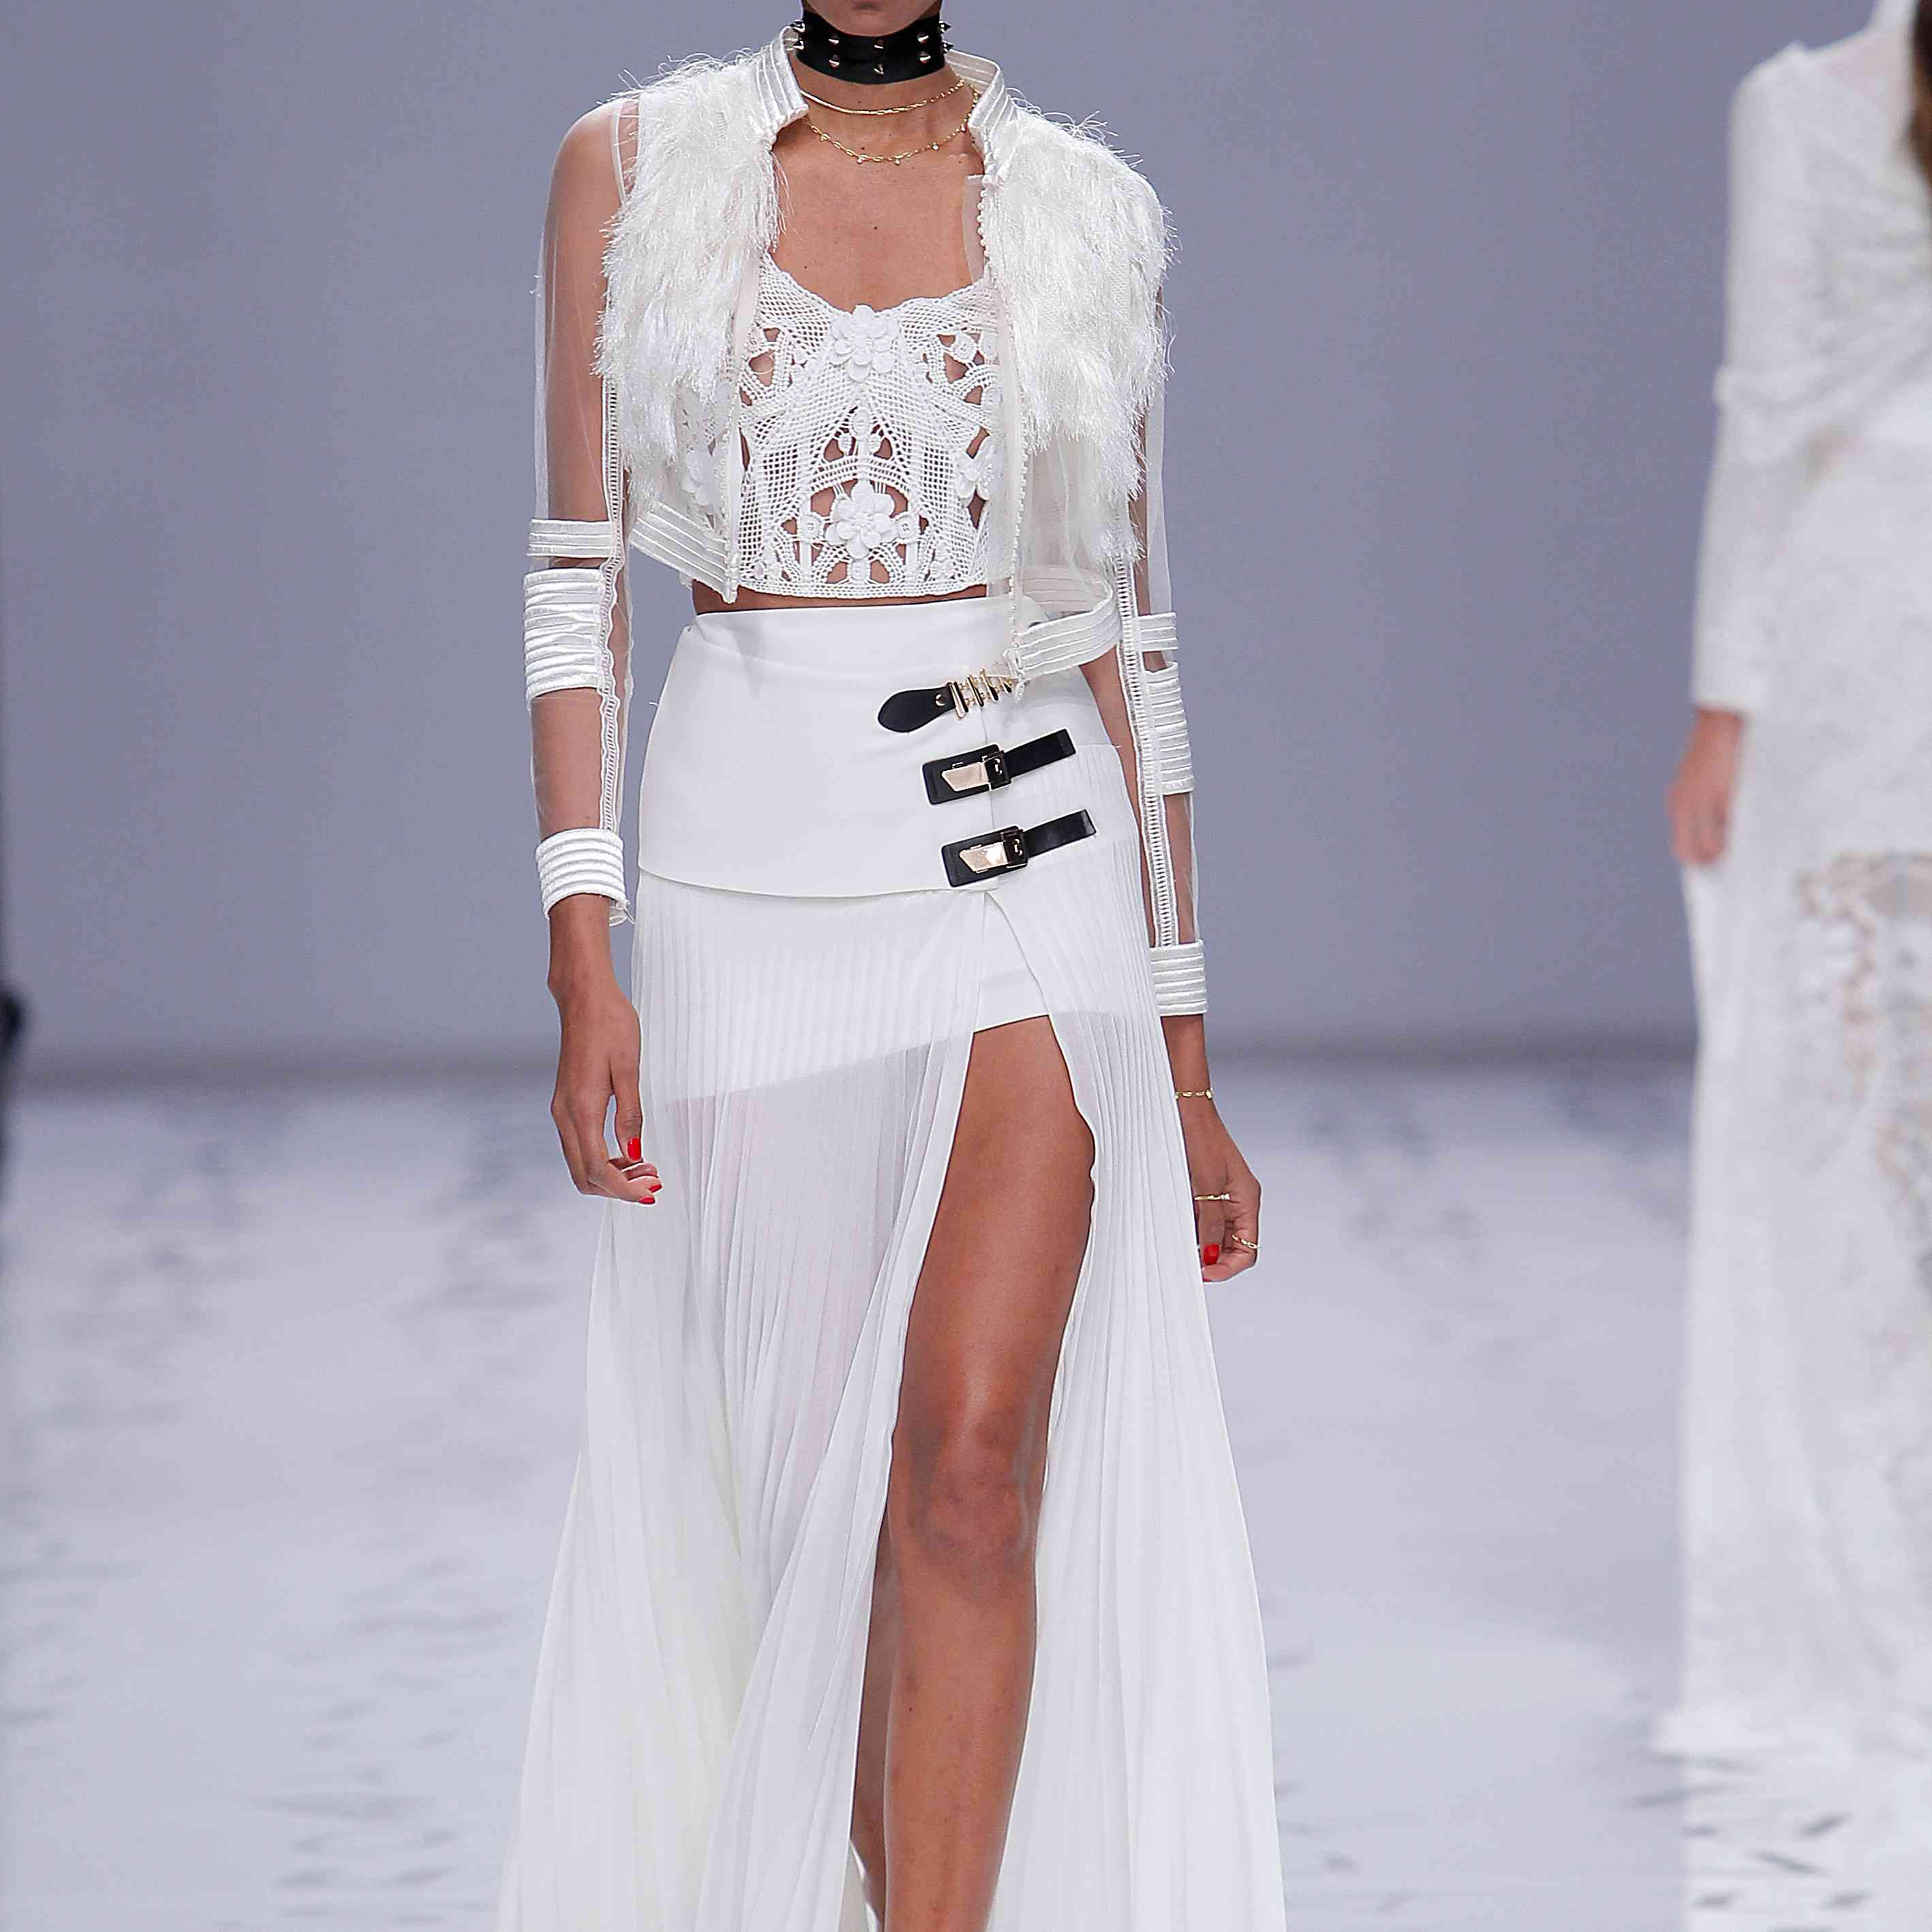 Model in a knit crop top with floral appliques and silk organza cropped jacket with feather accents and high-waisted chiffon skirt with a high slit and black and gold buckle details at the side